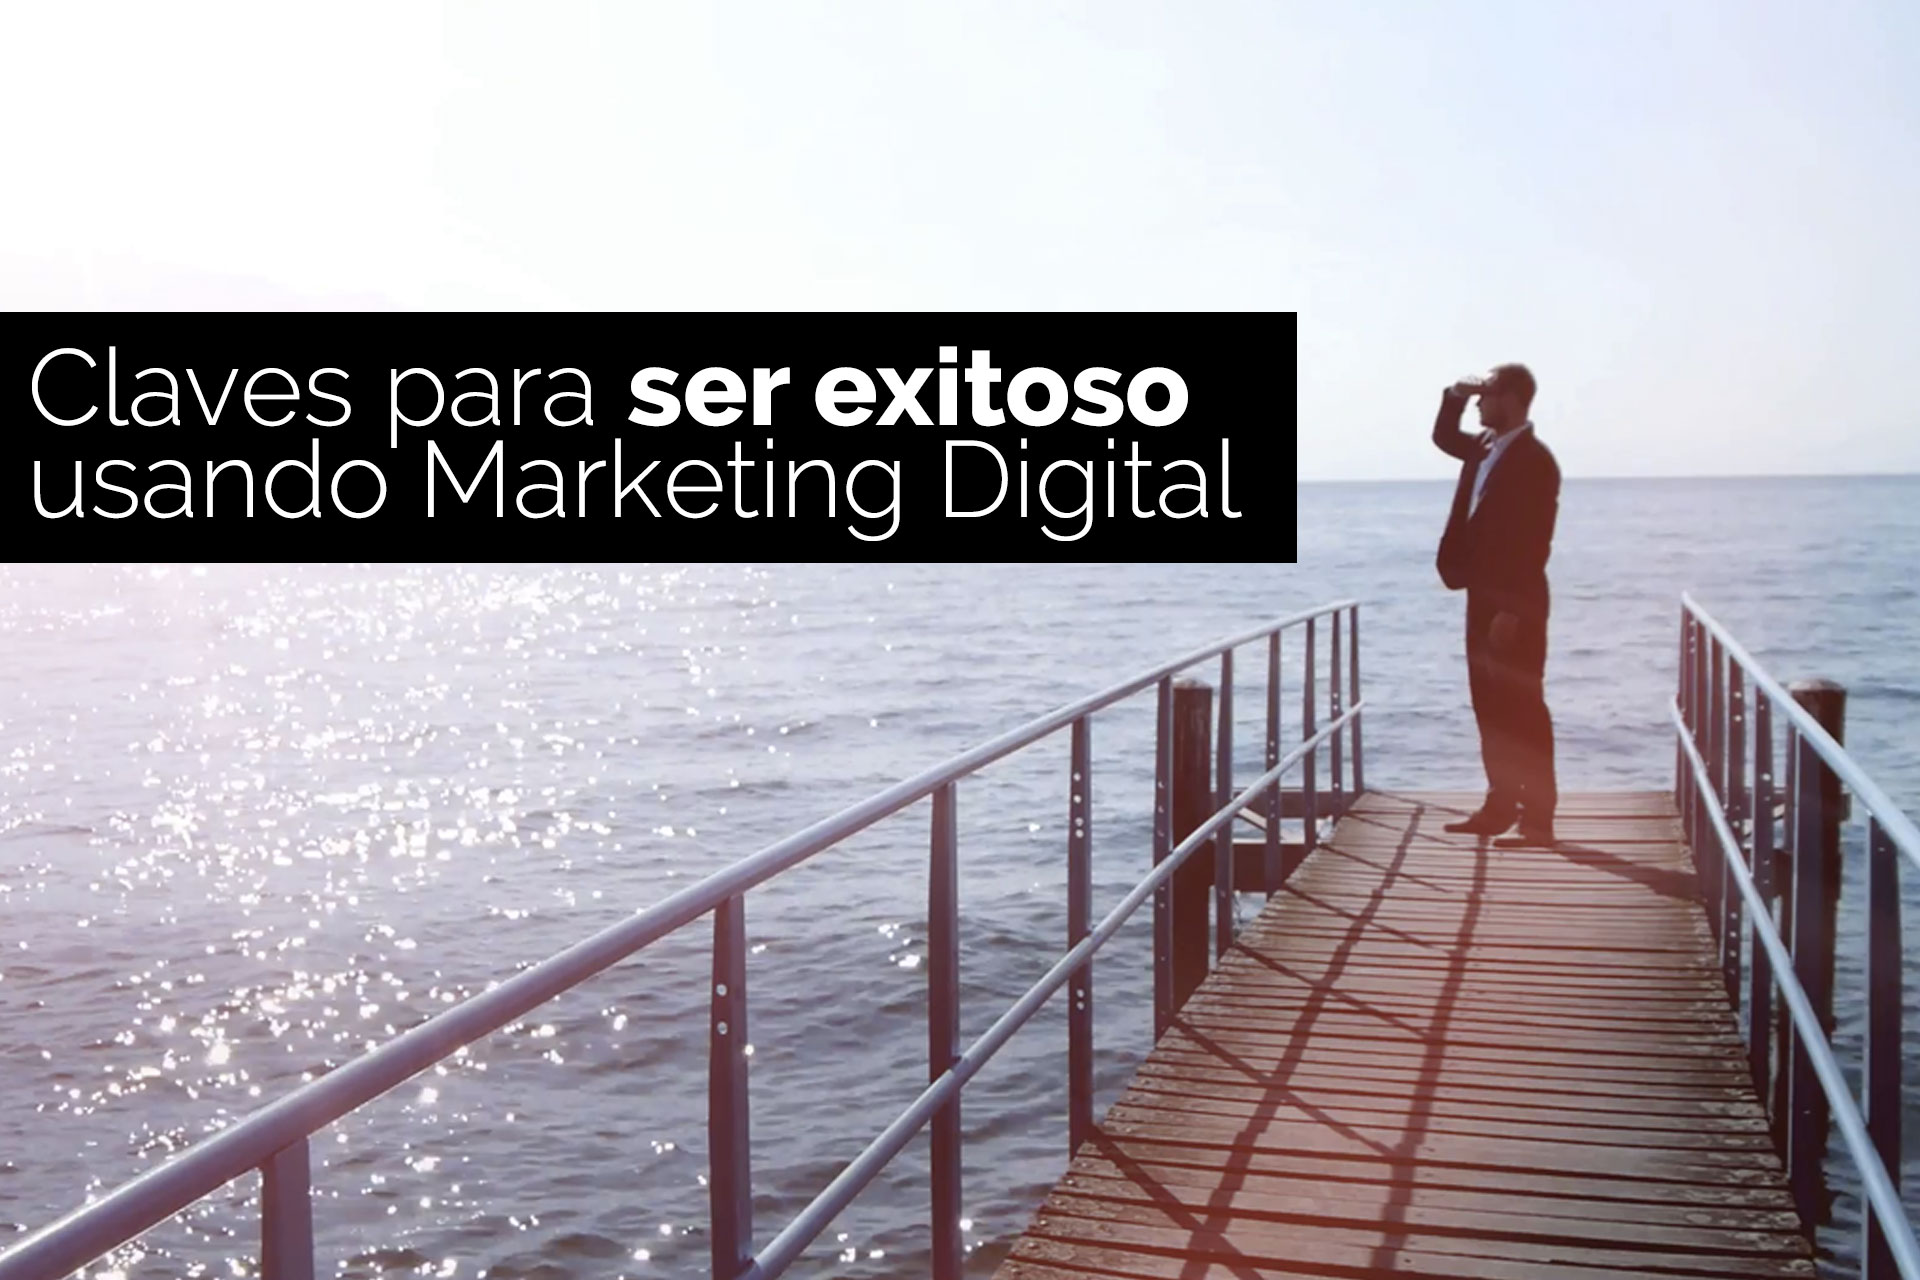 Claves para ser exitoso usando Marketing Digital